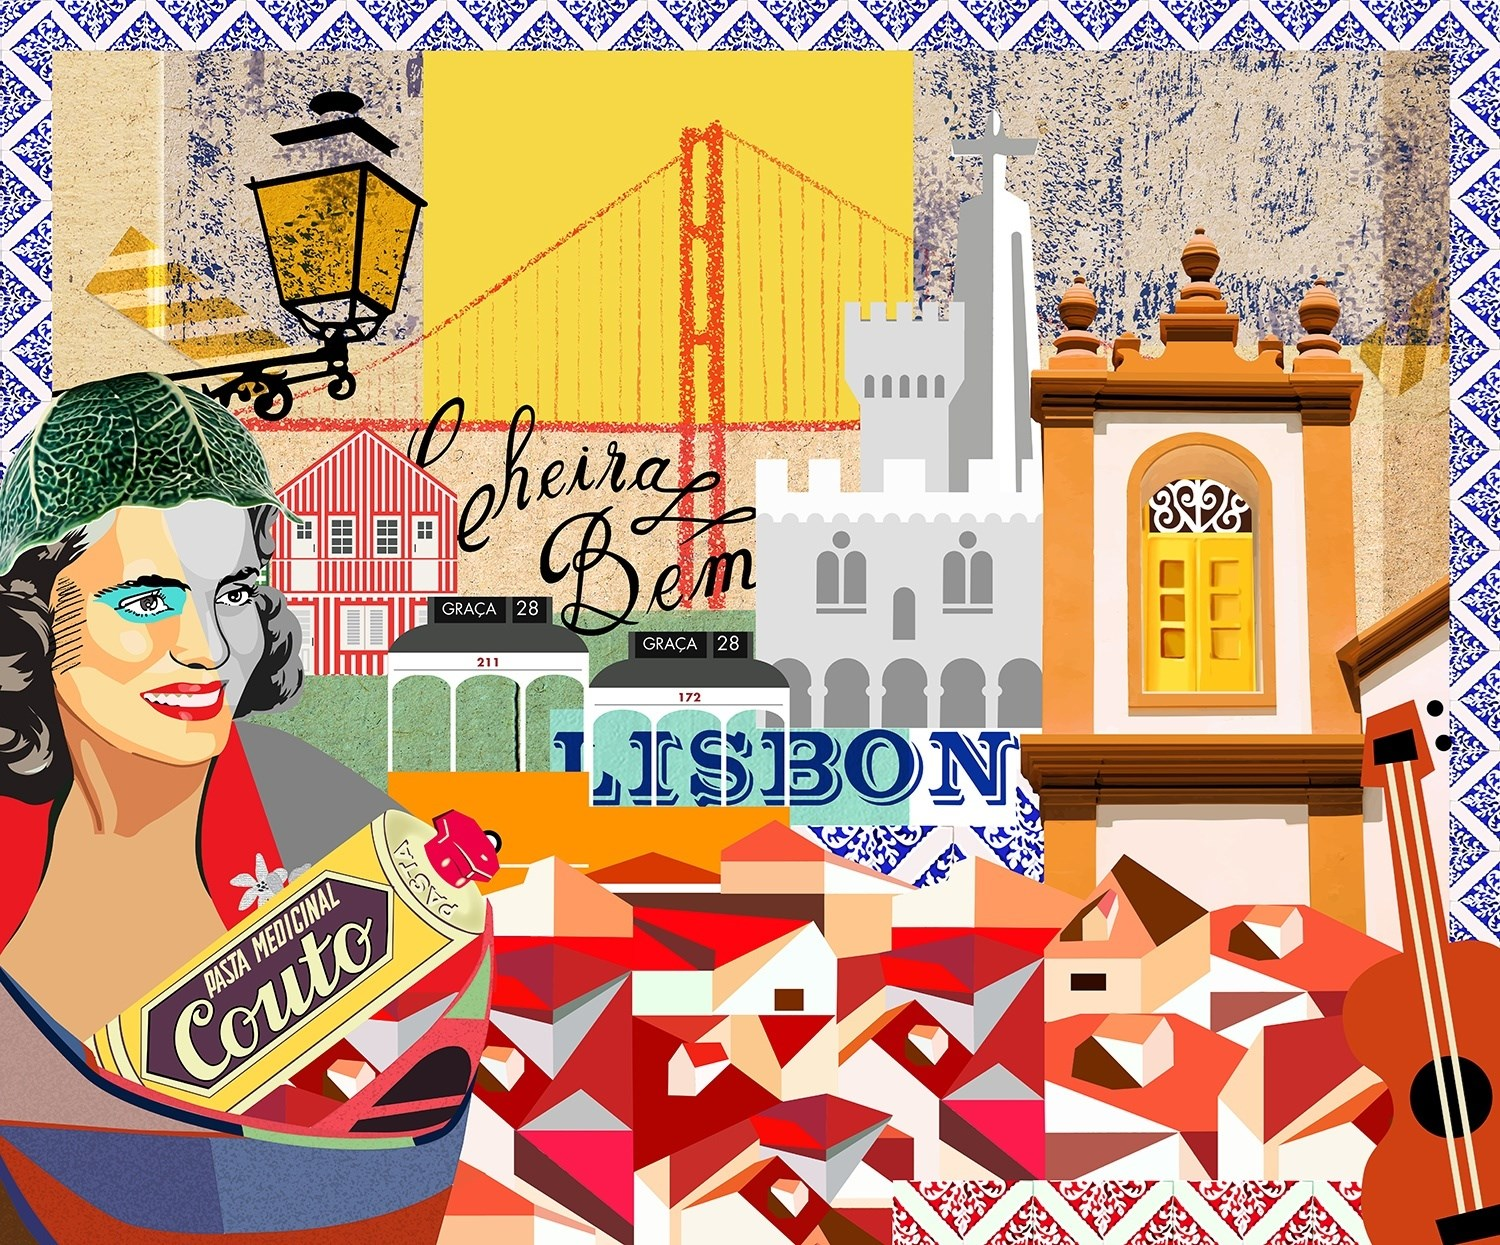 Cheira a Lisboa, original Places Collage Drawing and Illustration by Maria João Faustino